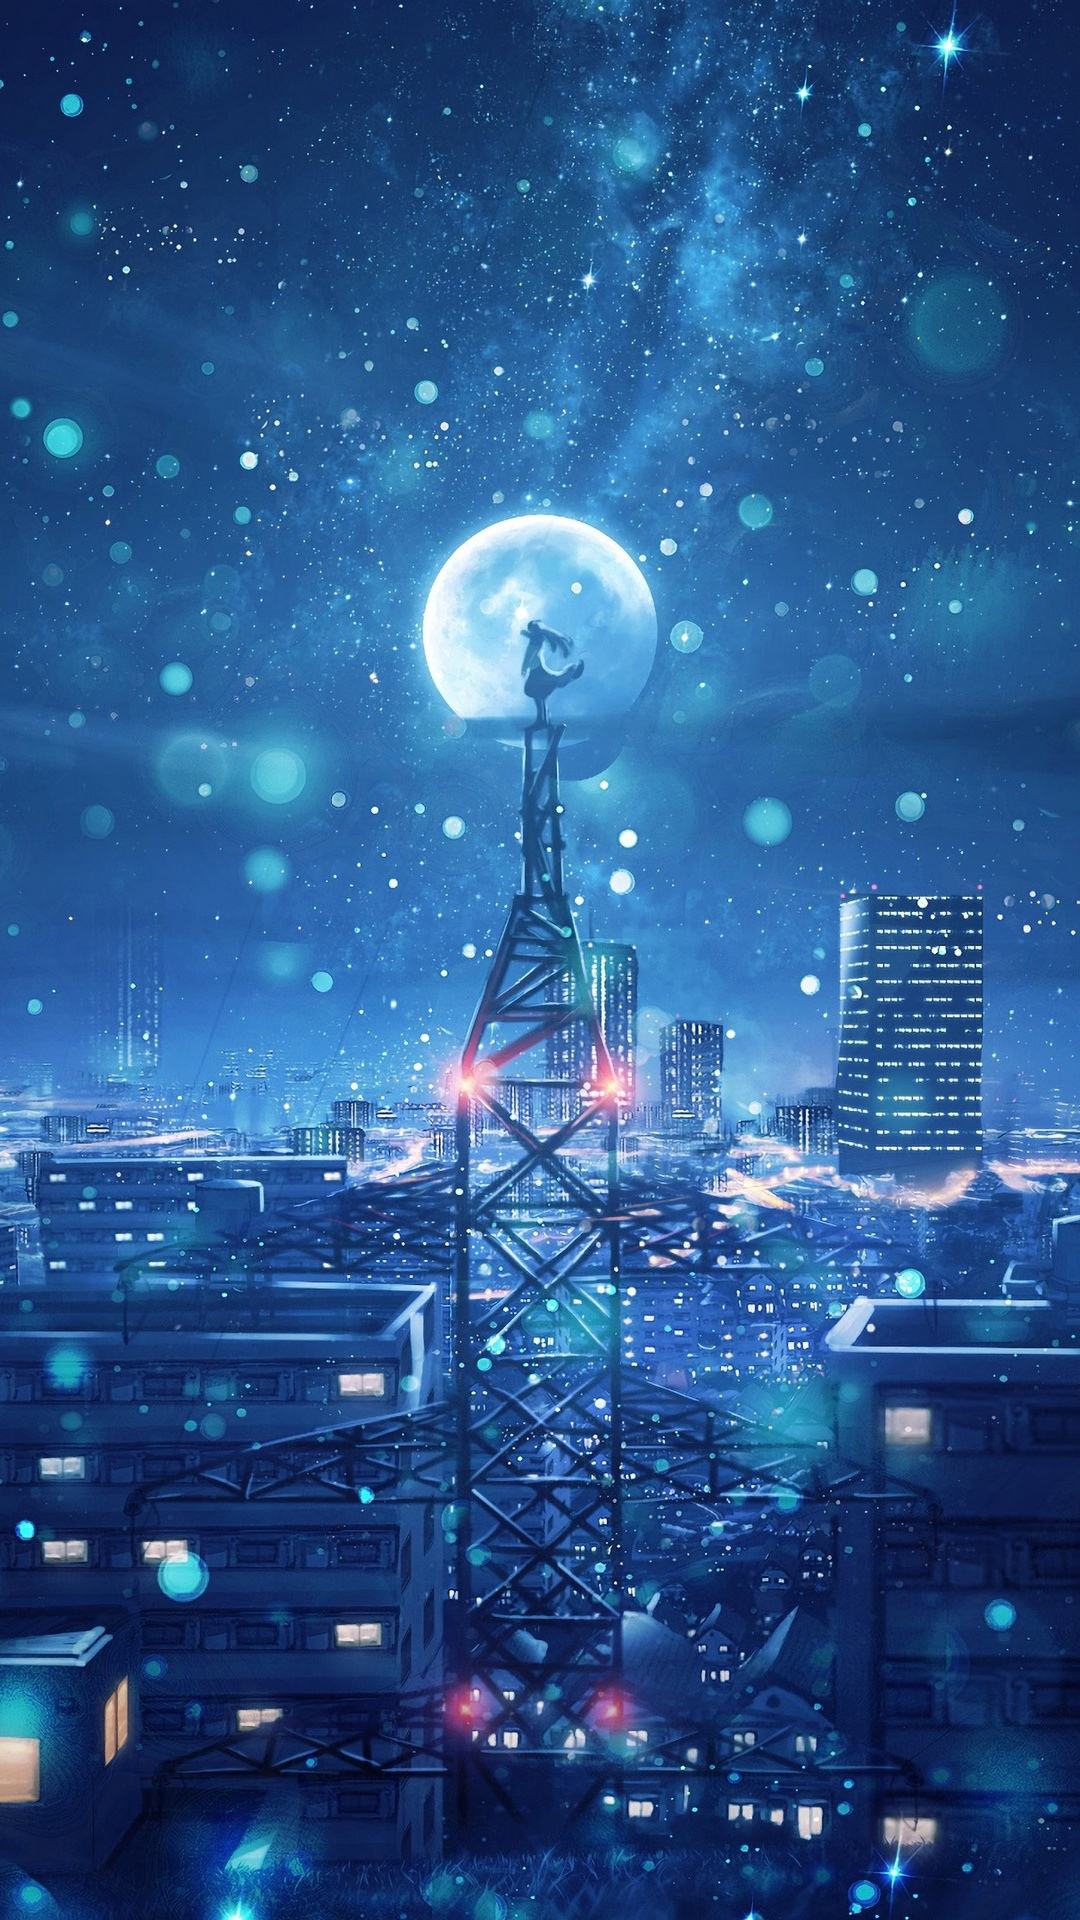 blue-night-big-moon-anime-scenery-4k-uo.jpg